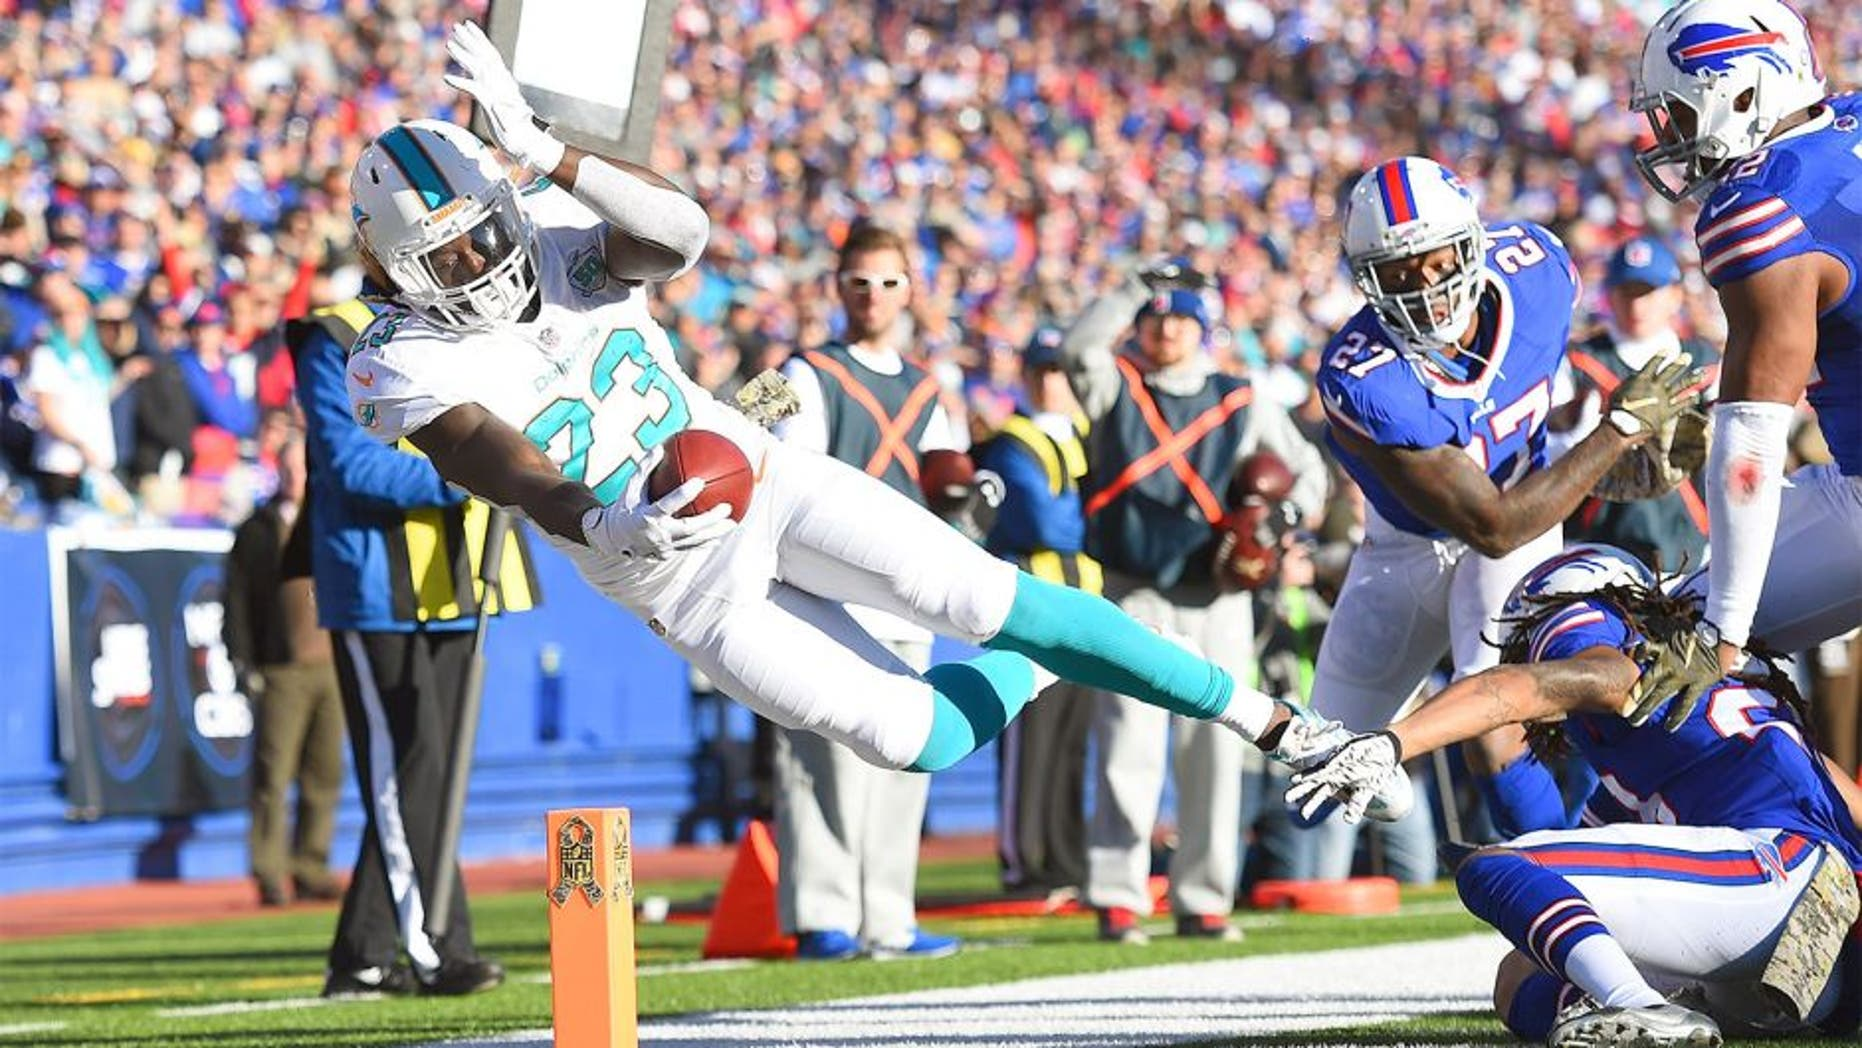 ORCHARD PARK, NY - NOVEMBER 08: Jay Ajayi #23 of the Miami Dolphins comes up short of a touchdown against the Buffalo Bills during the second half at Ralph Wilson Stadium on November 8, 2015 in Orchard Park, New York. (Photo by Rich Barnes/Getty Images)